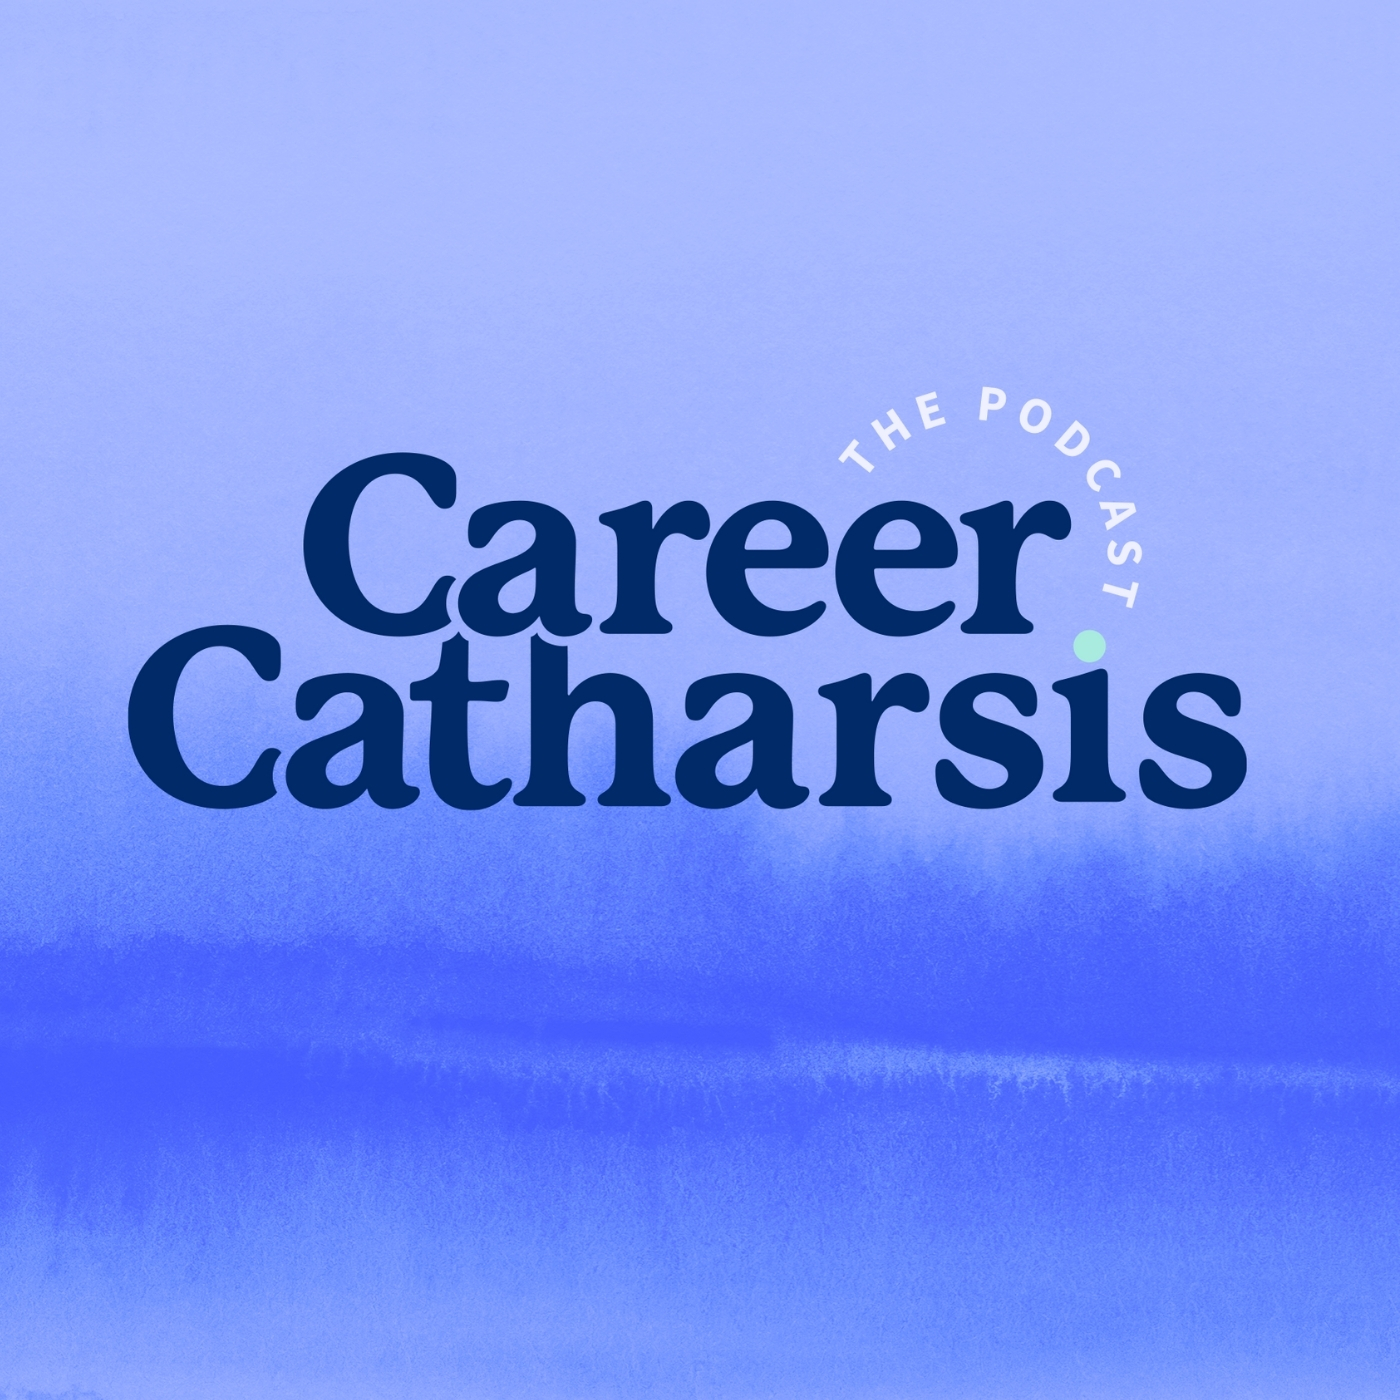 Careers in Cannabis